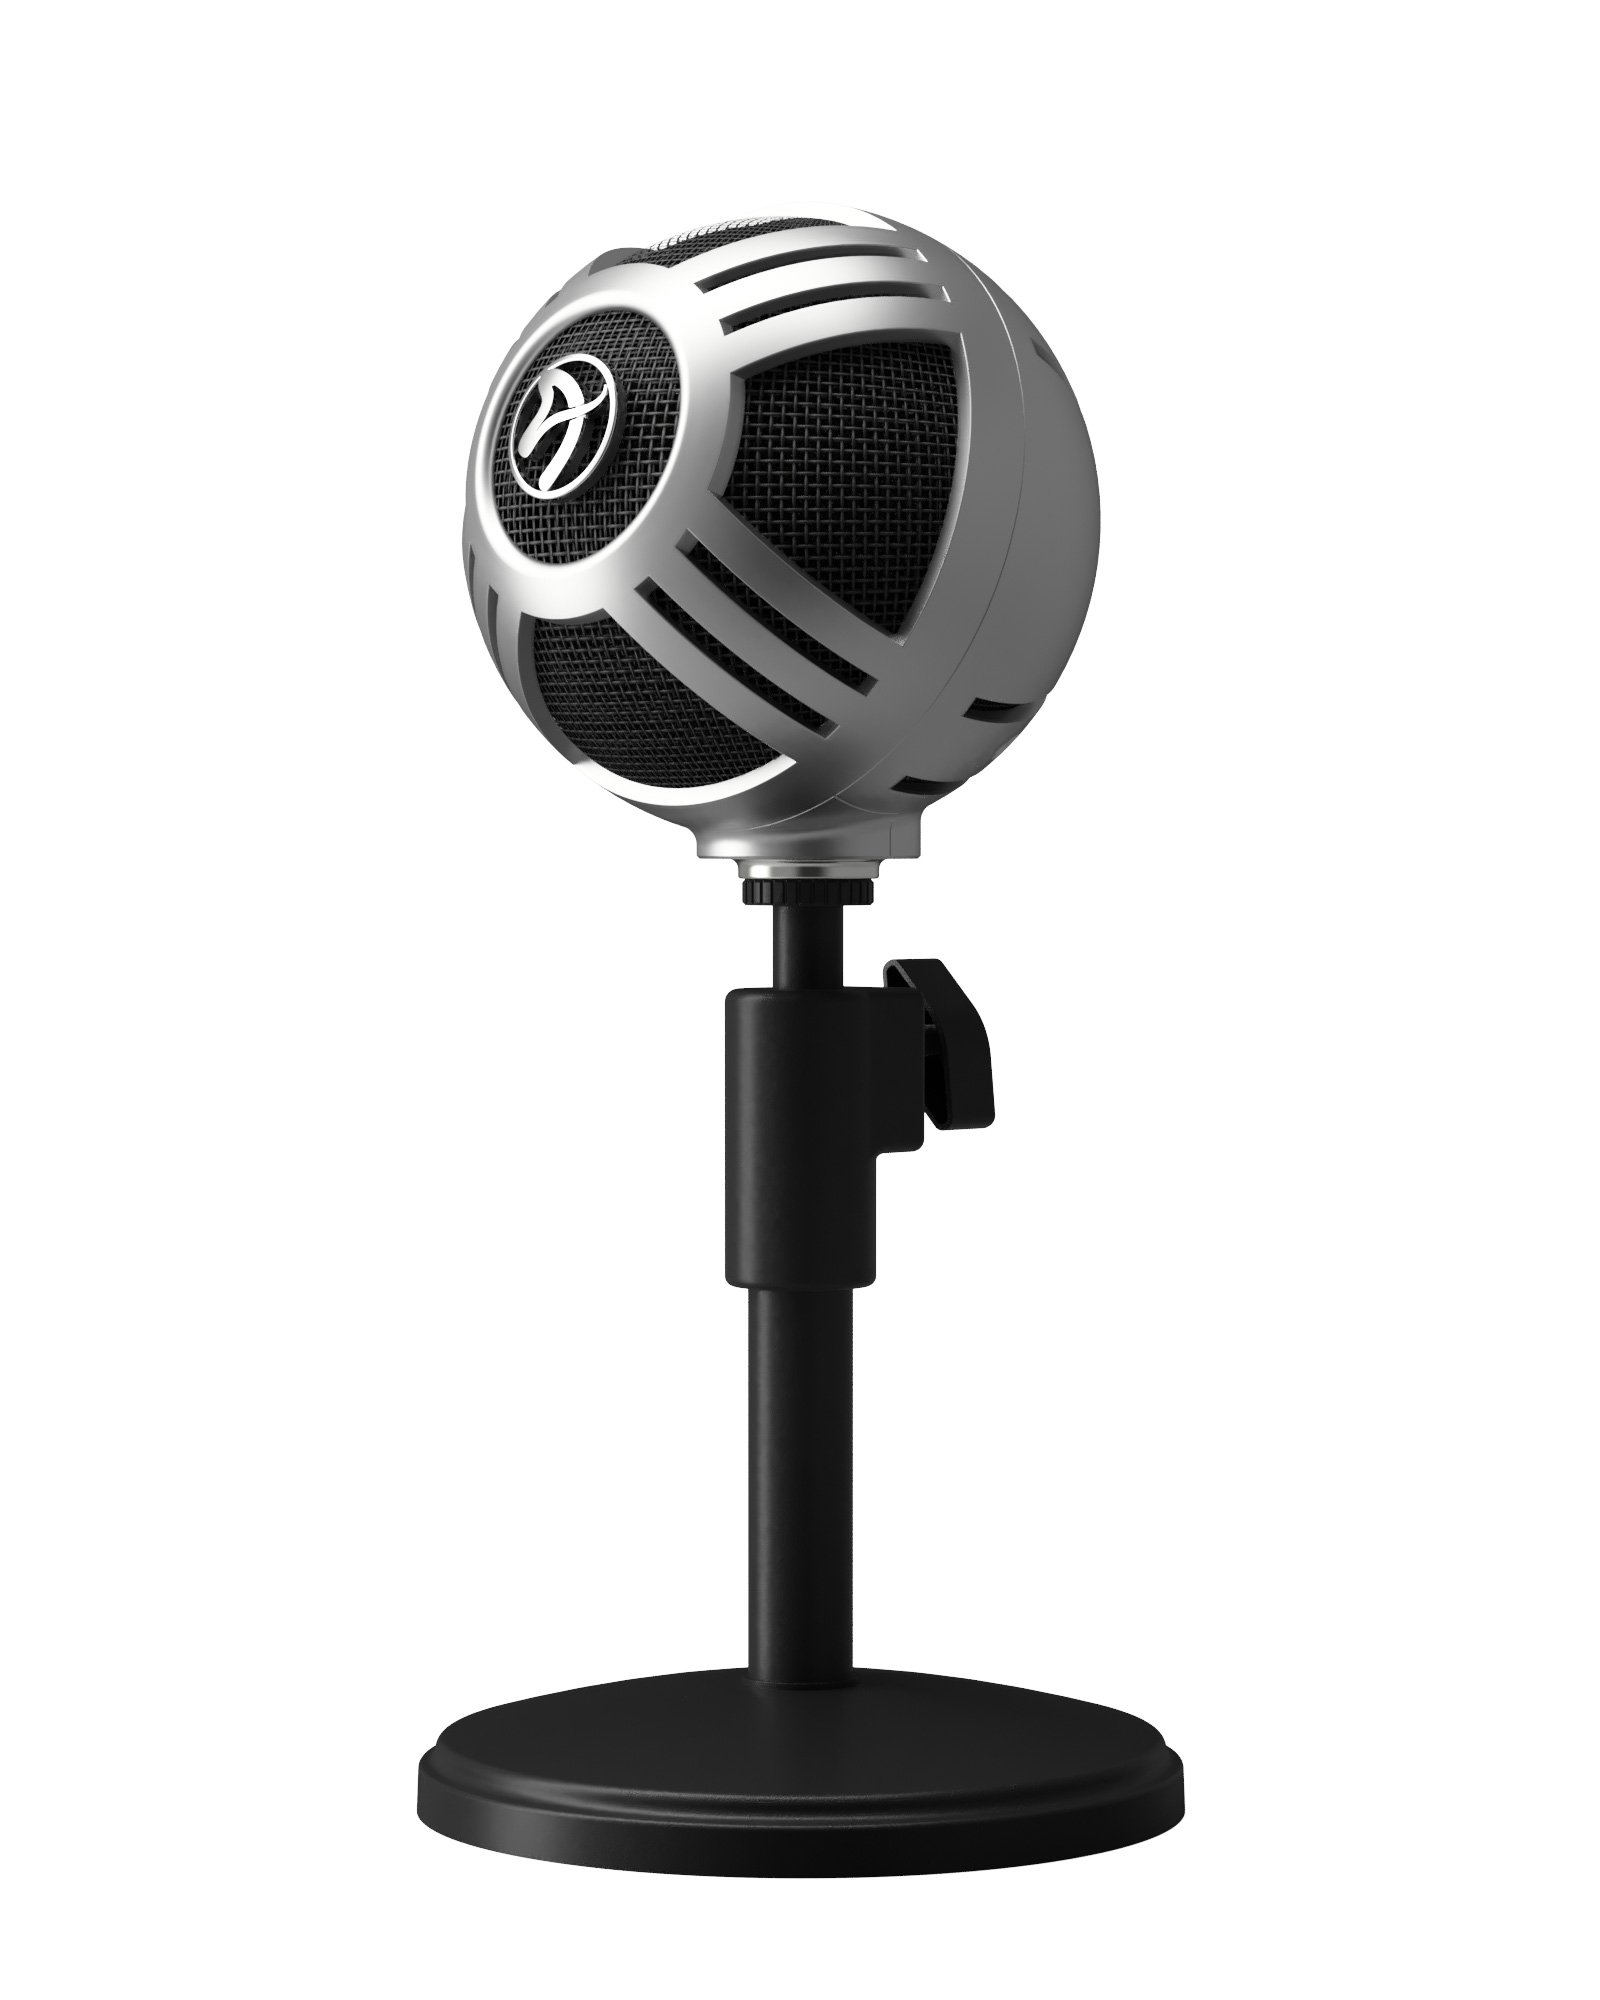 Arozzi Sfera PRO USB Microphone for Gaming & Streaming,...